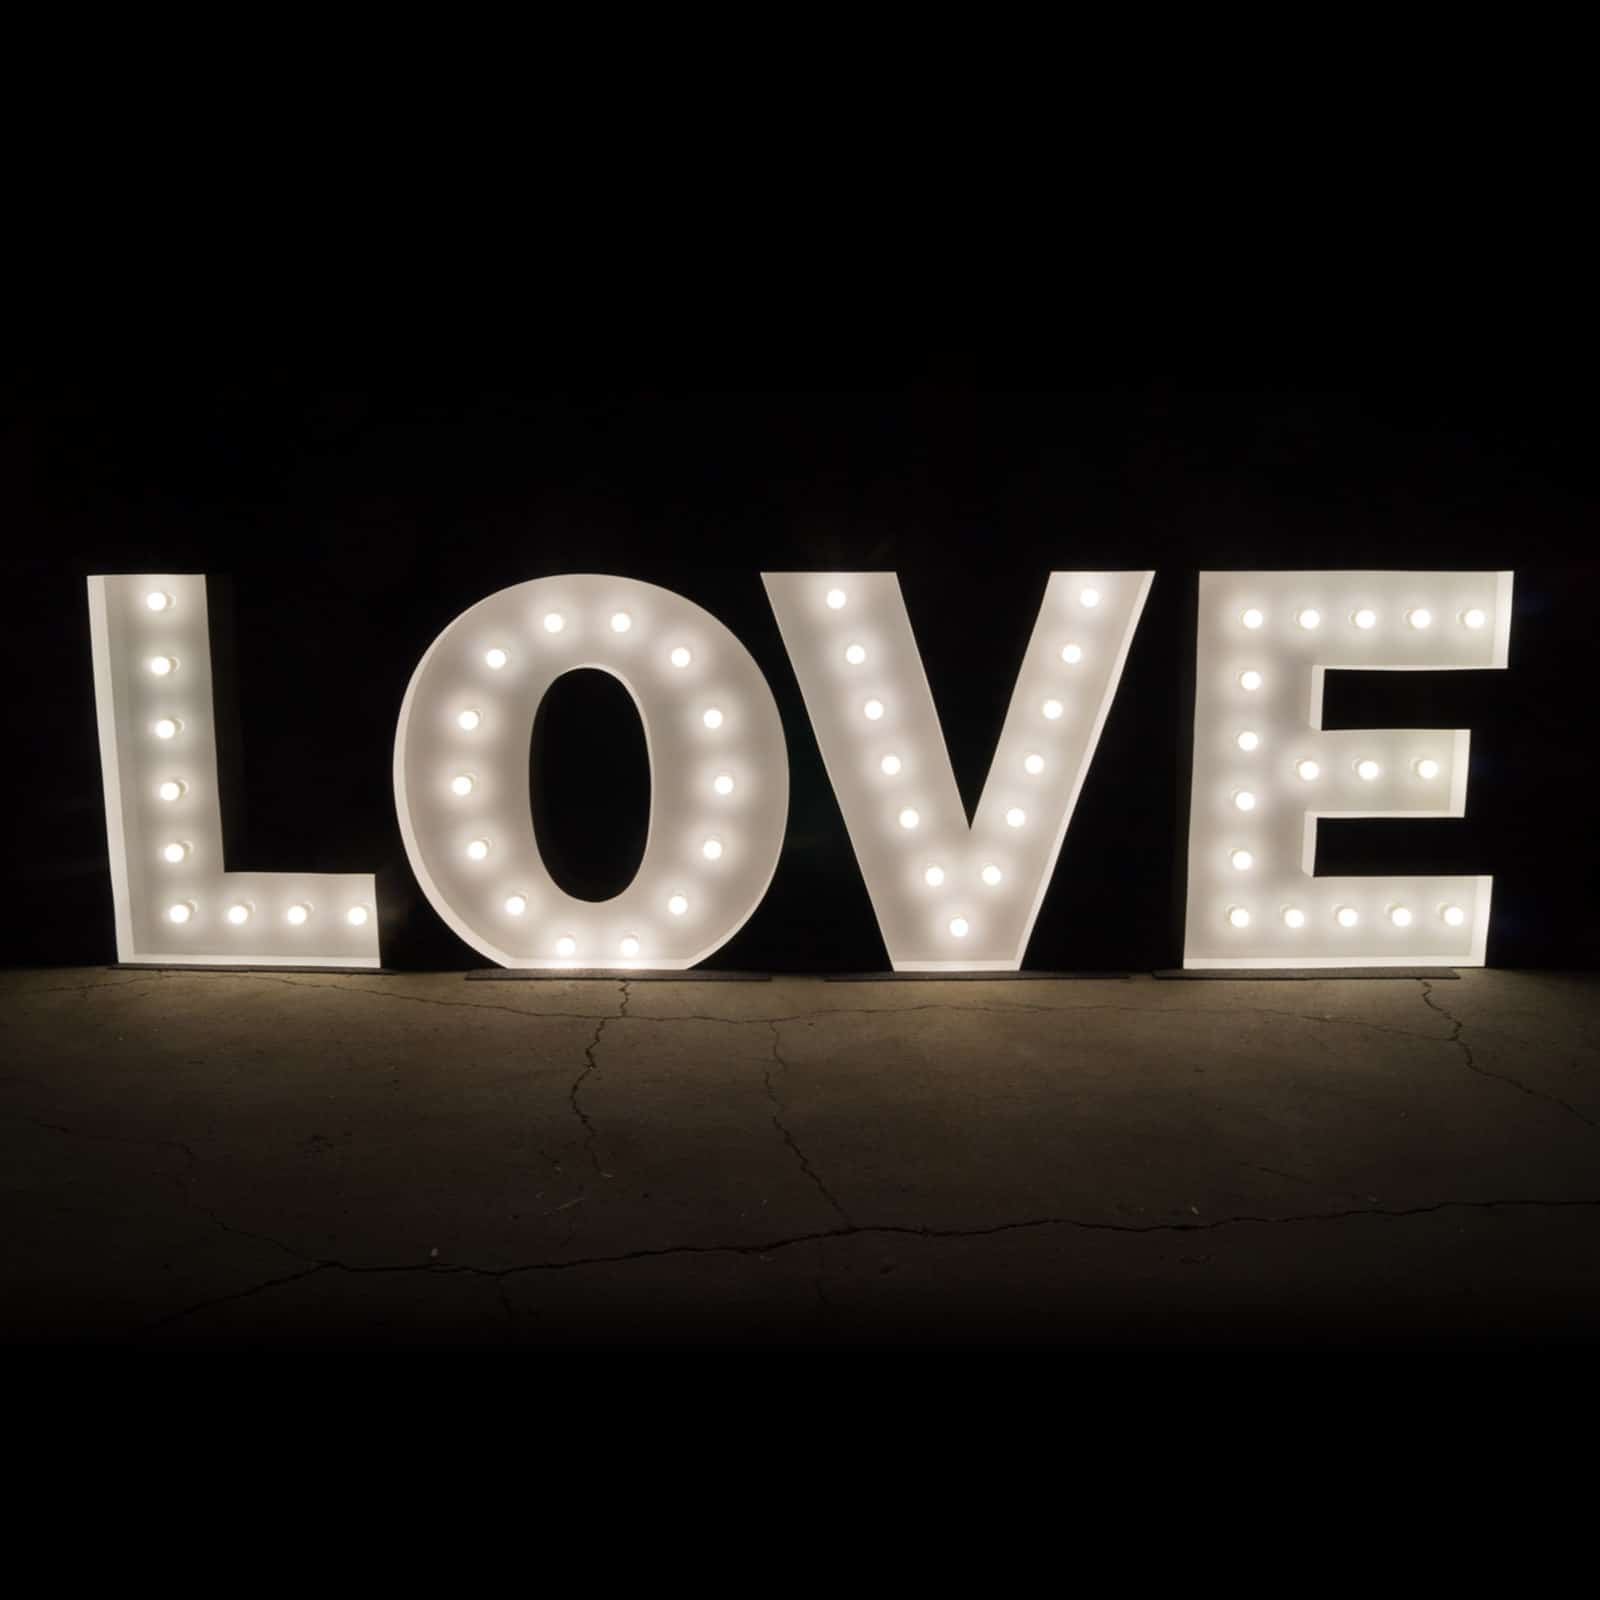 chair covers hire wholesale solid wood ladder back chairs light up letters - stunning 1.2m illuminated marquee love